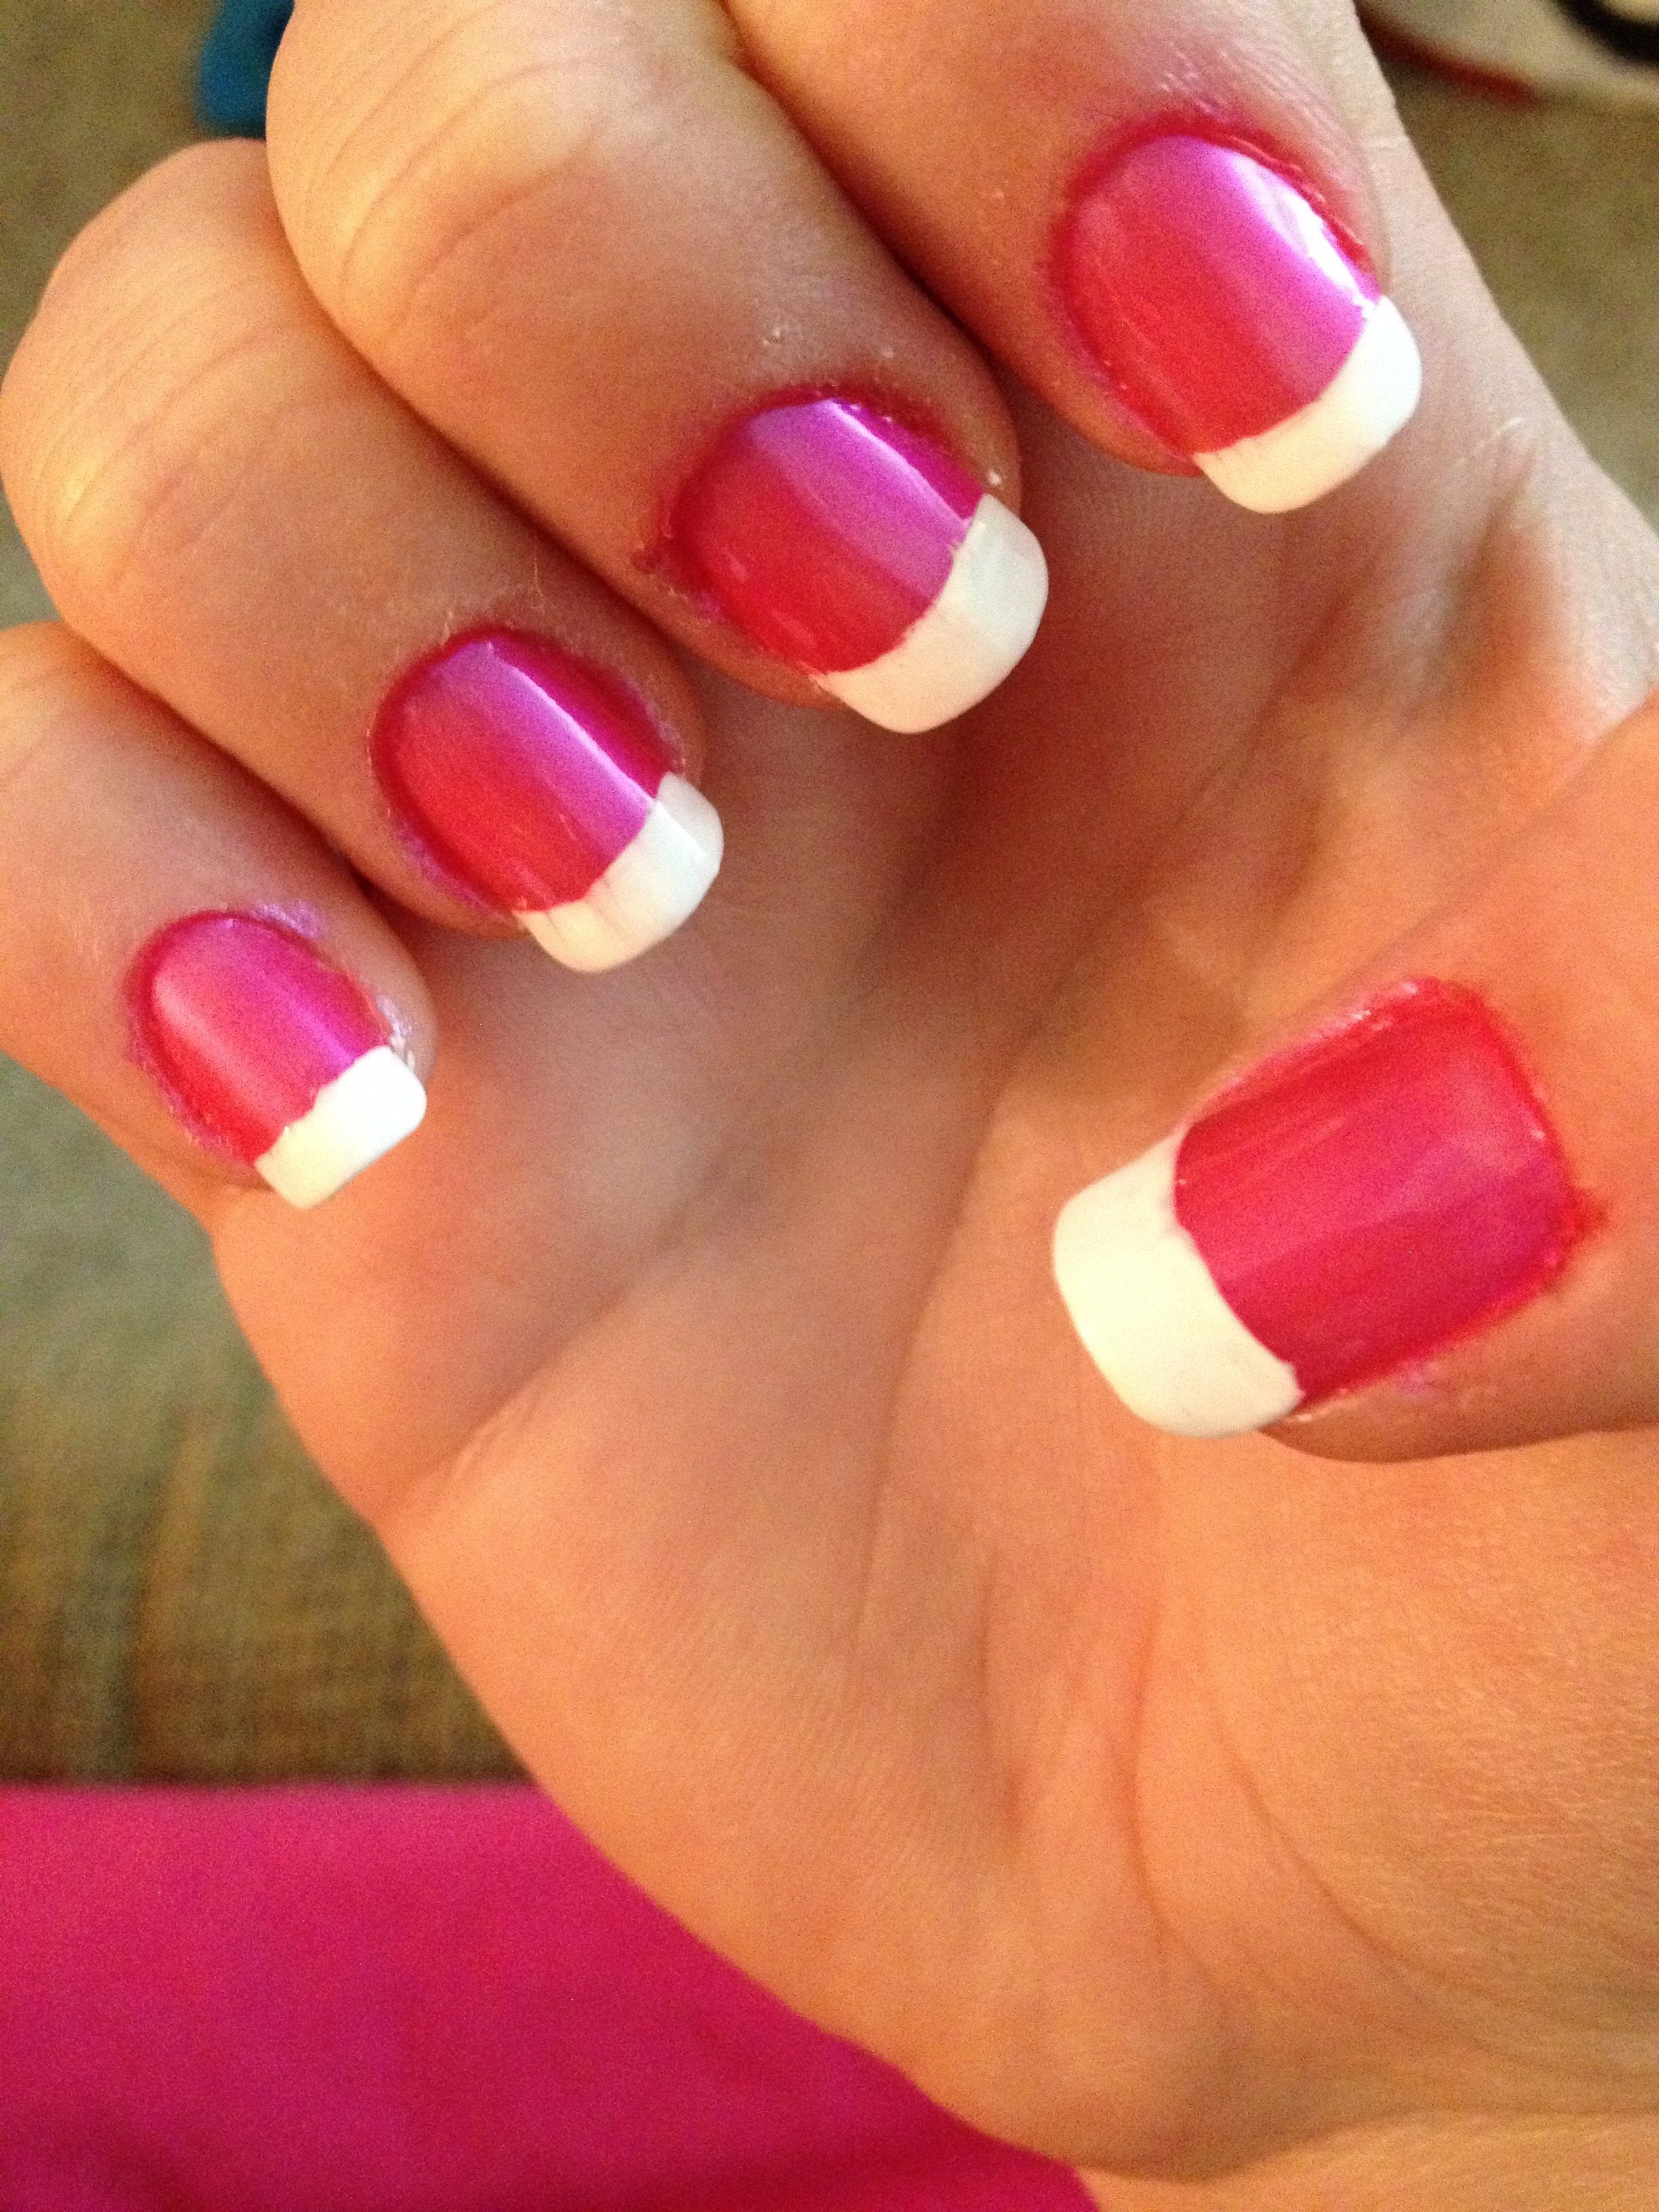 pink and white manicure | ma- makeup lovers anonymous